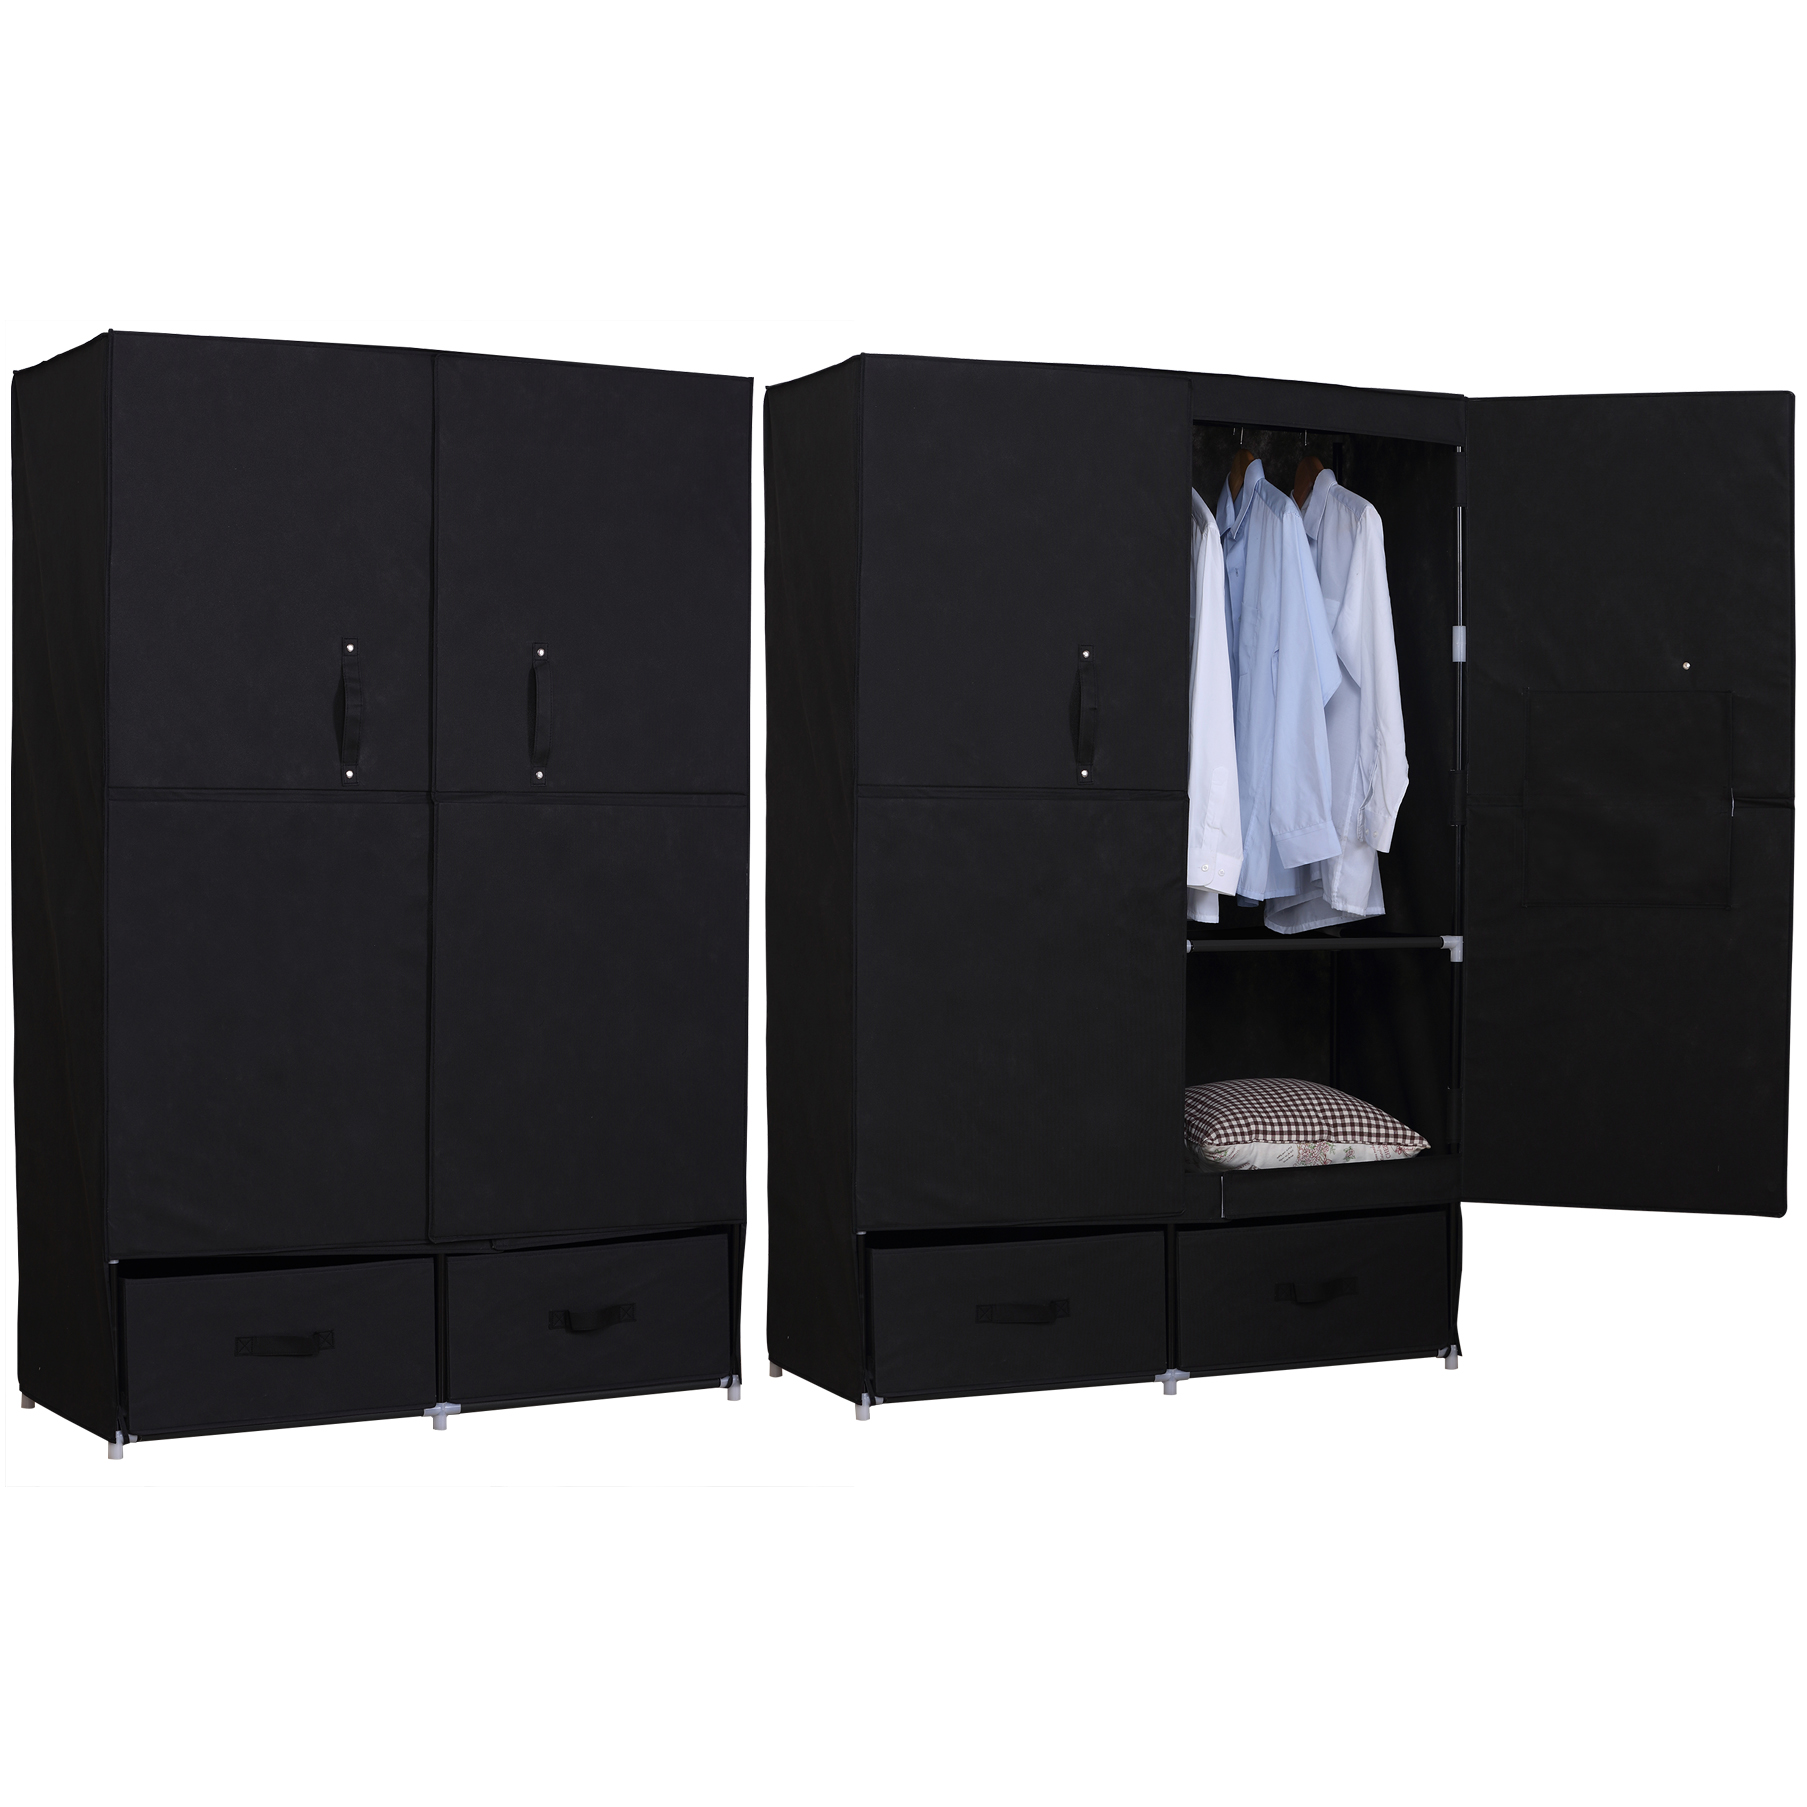 kleiderschrank stoff kleiderschrank stoff kaufen sie auf. Black Bedroom Furniture Sets. Home Design Ideas